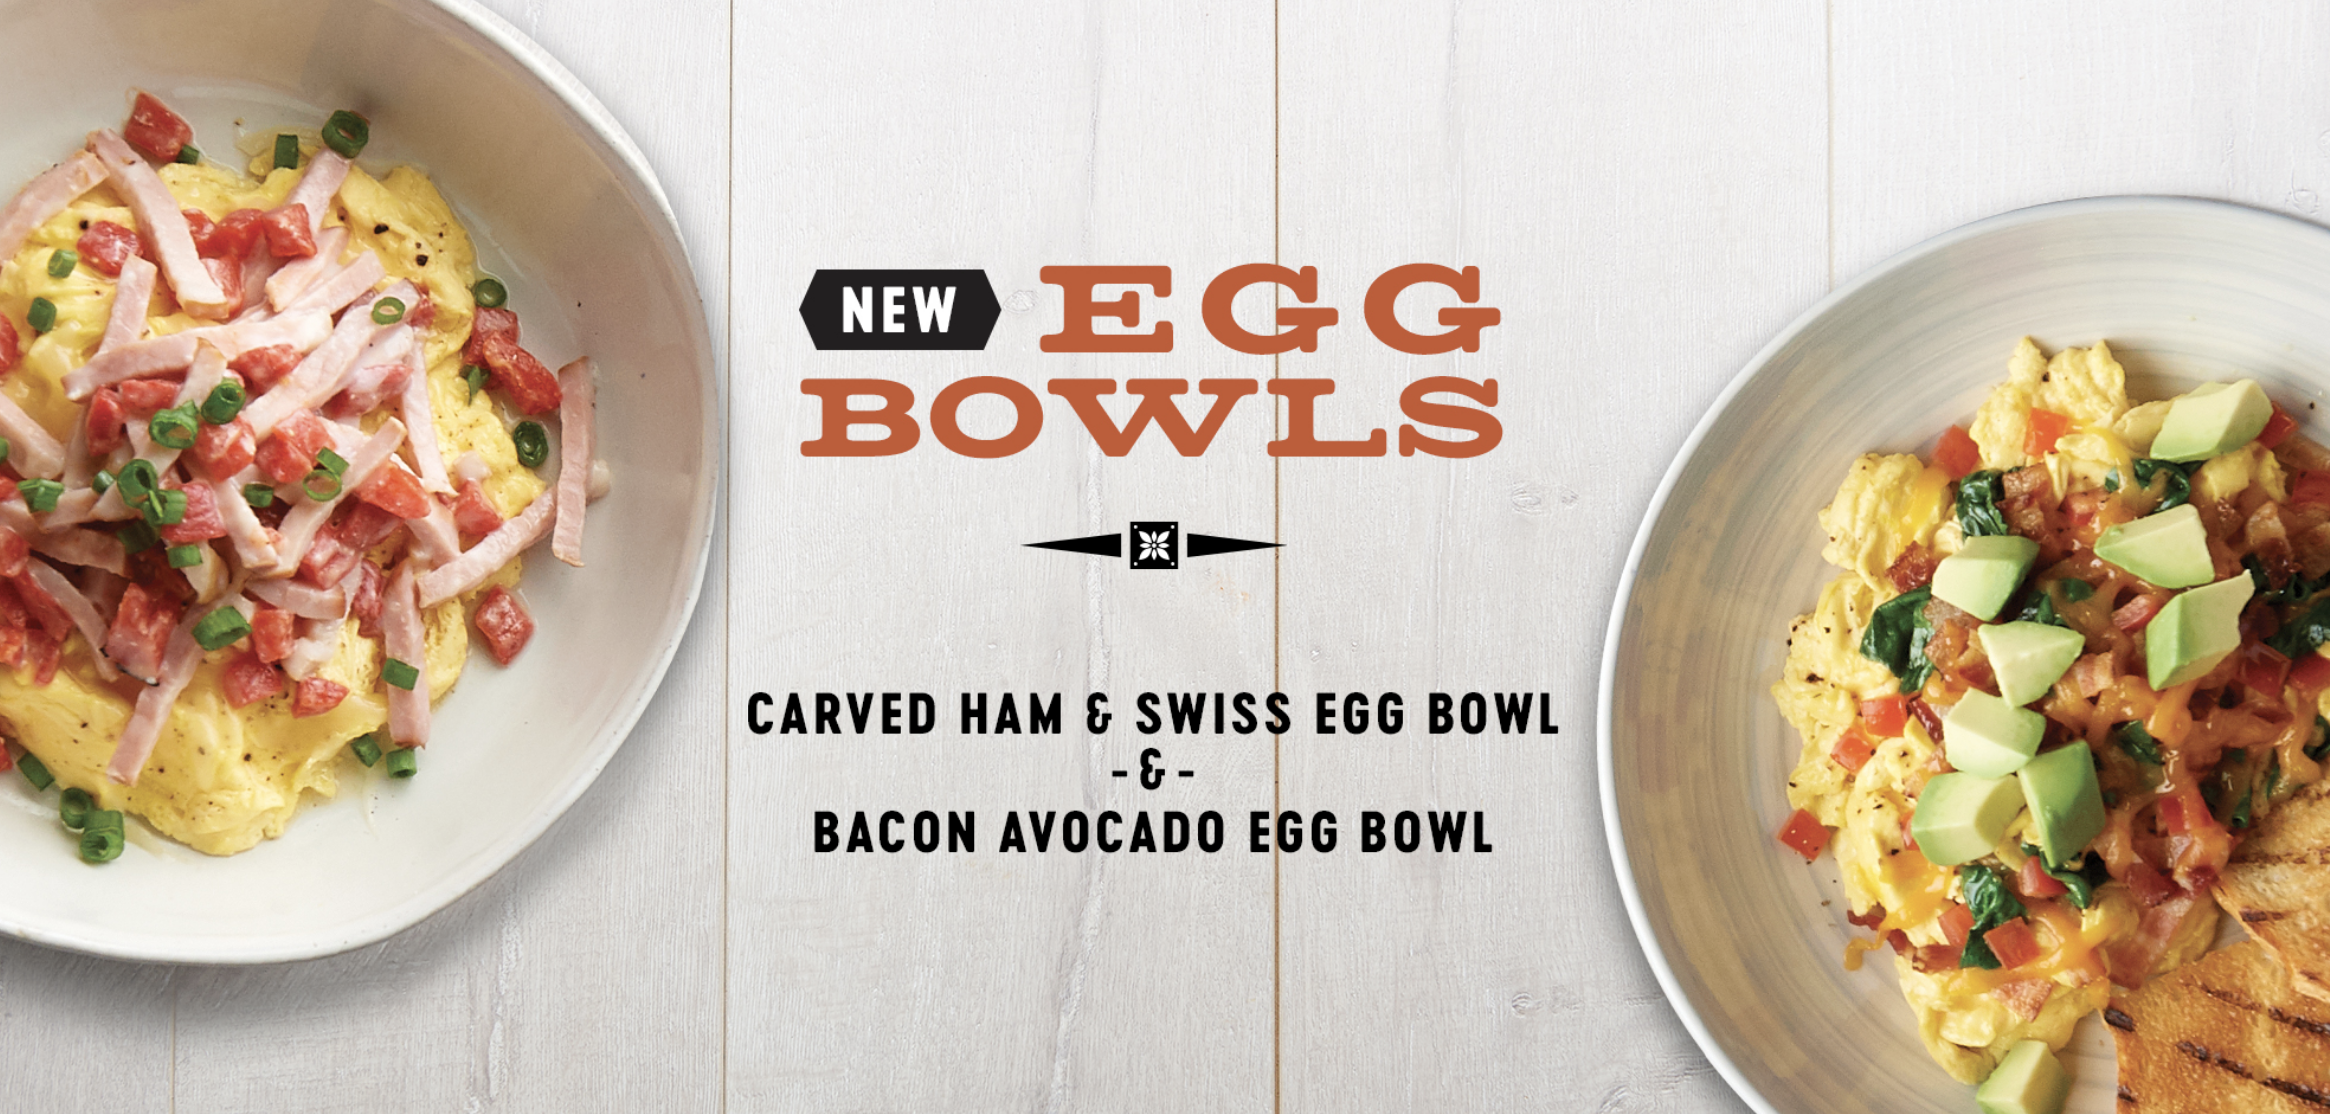 Try Our New Egg Bowls